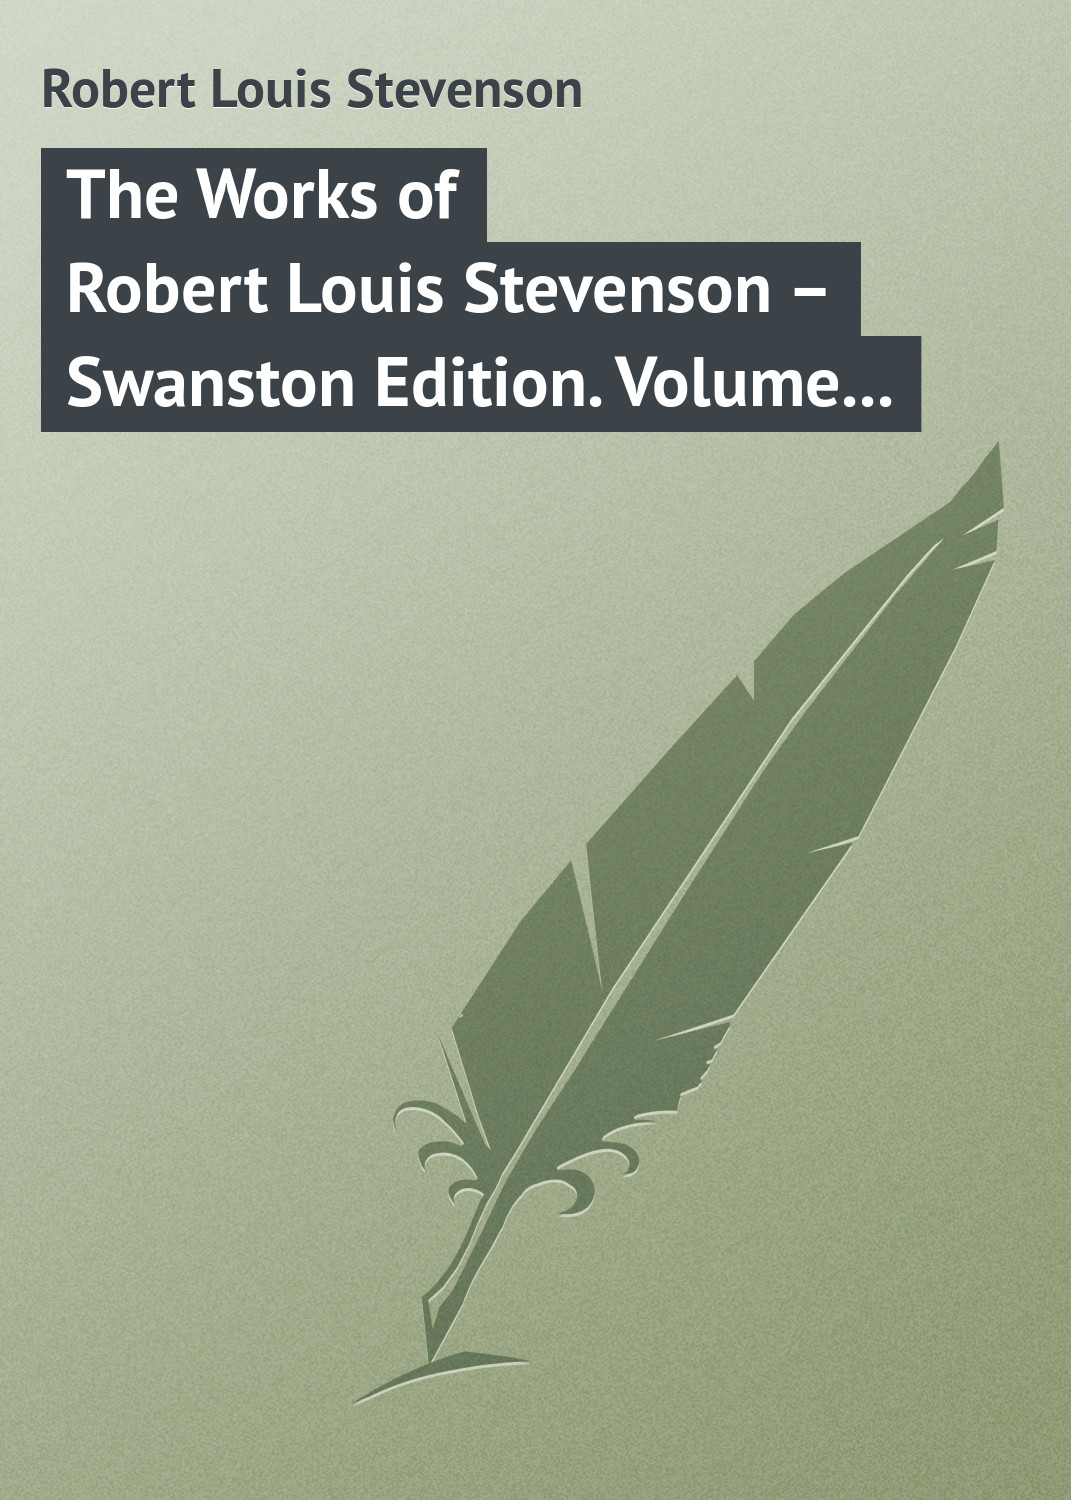 цена на Роберт Льюис Стивенсон The Works of Robert Louis Stevenson – Swanston Edition. Volume 23